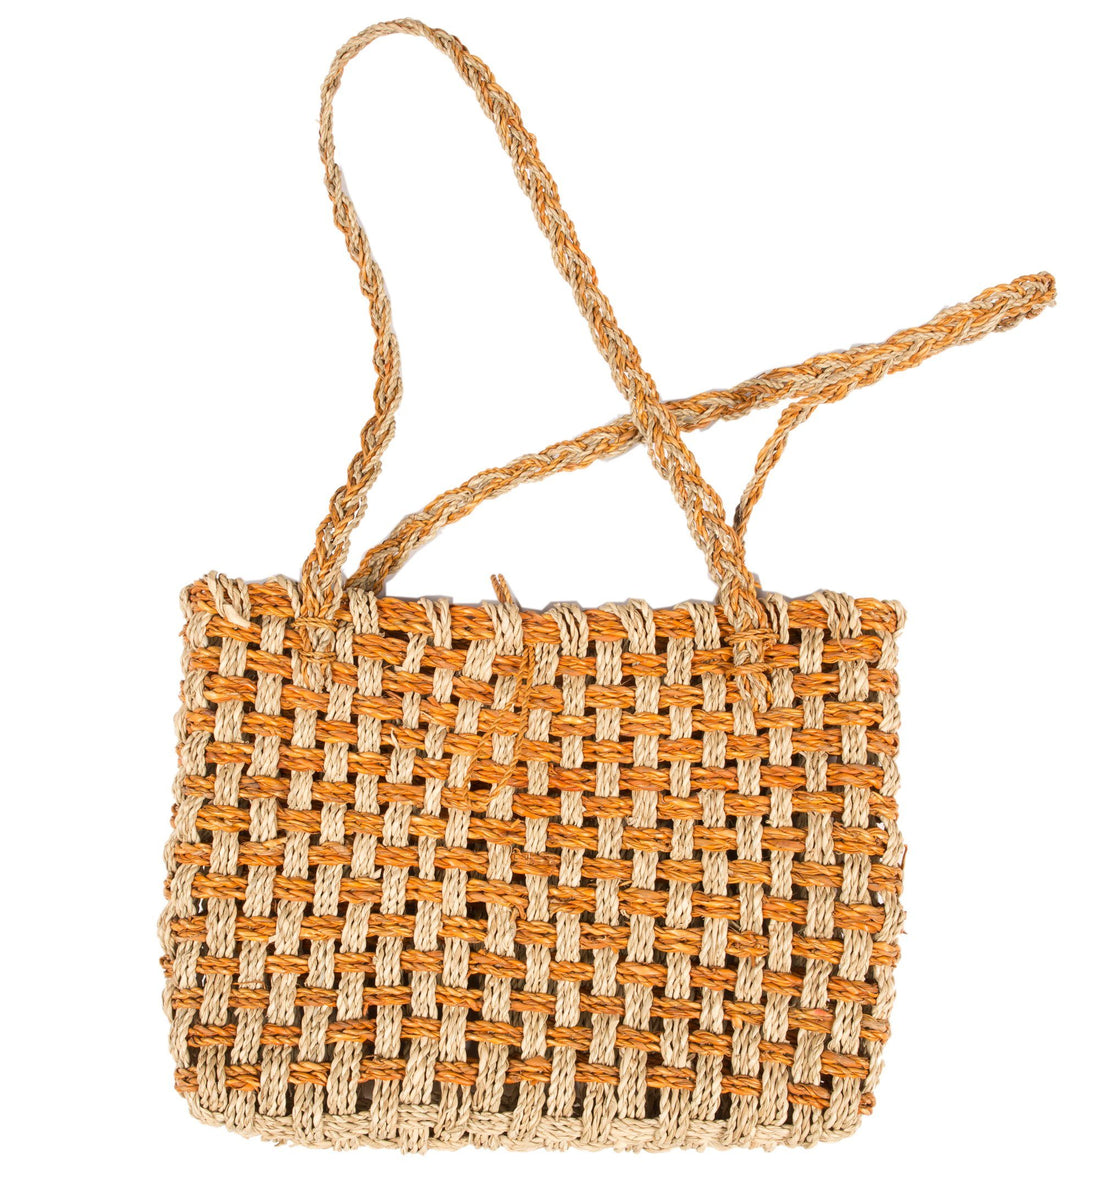 Vintage Crochet Tote Bag - Vintage - Iron and Resin